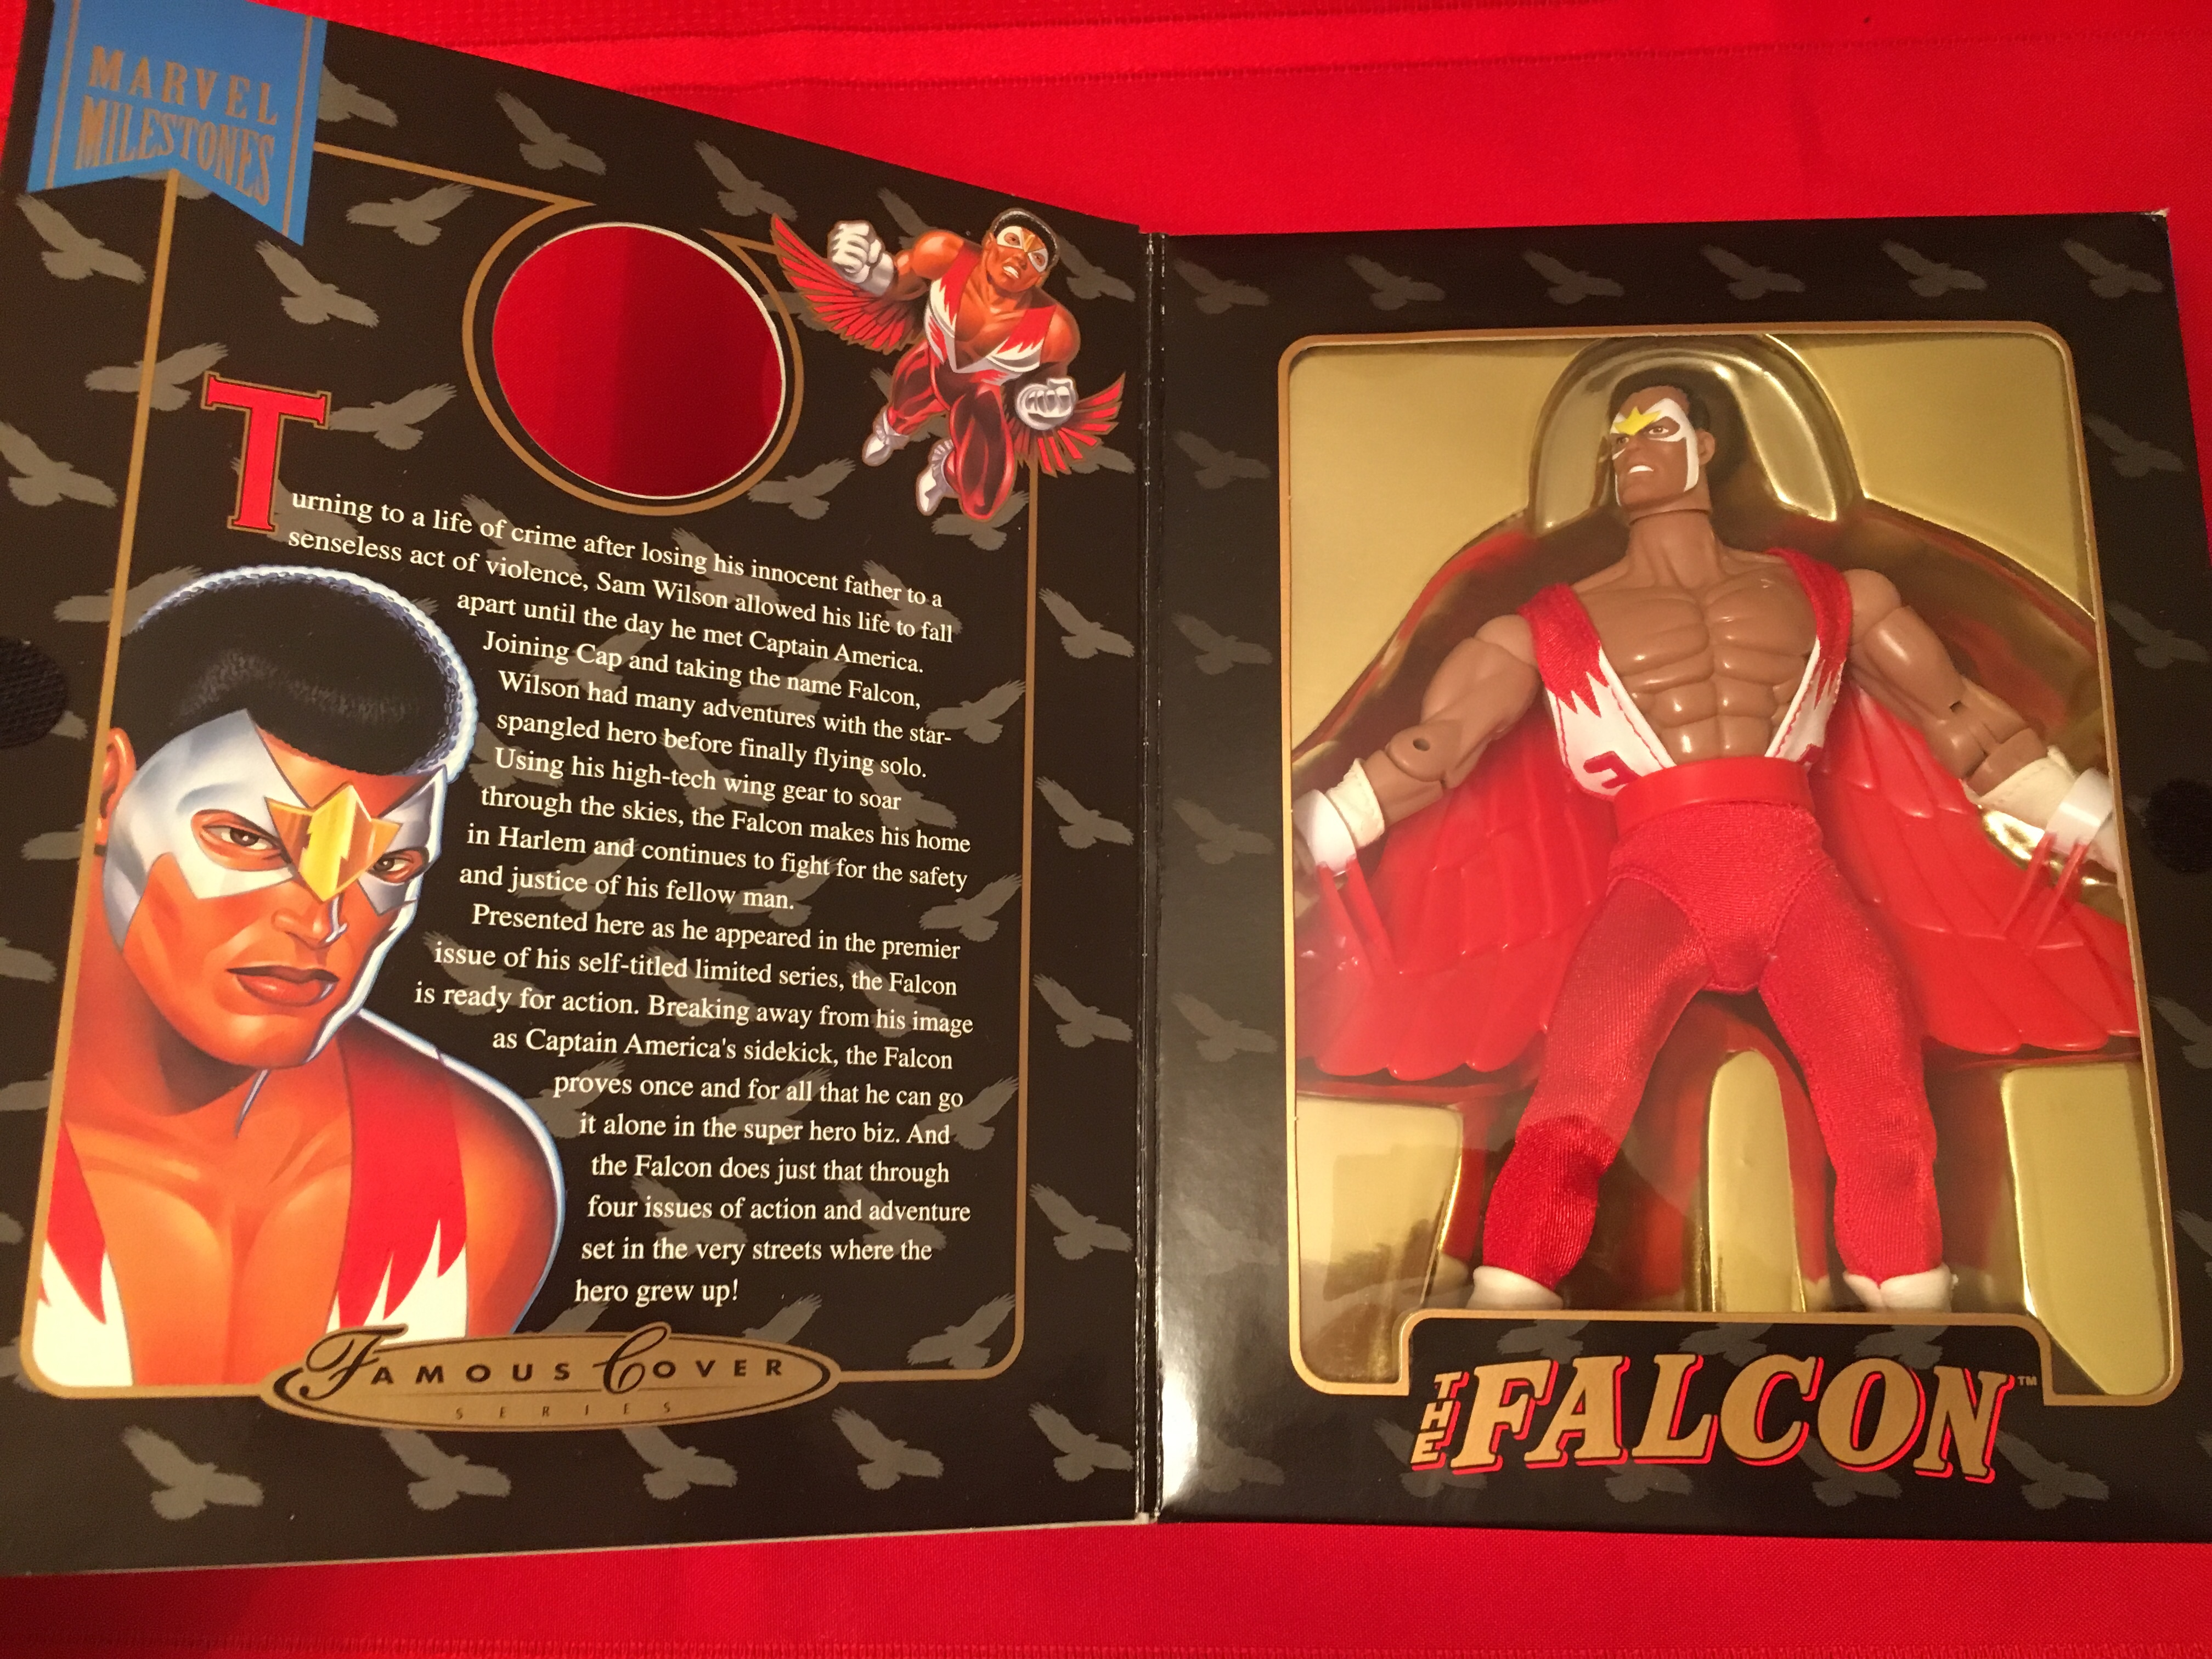 "1998 Famous Cover Series ""The Falcon""  Toy Biz, Inc. 03511248263"